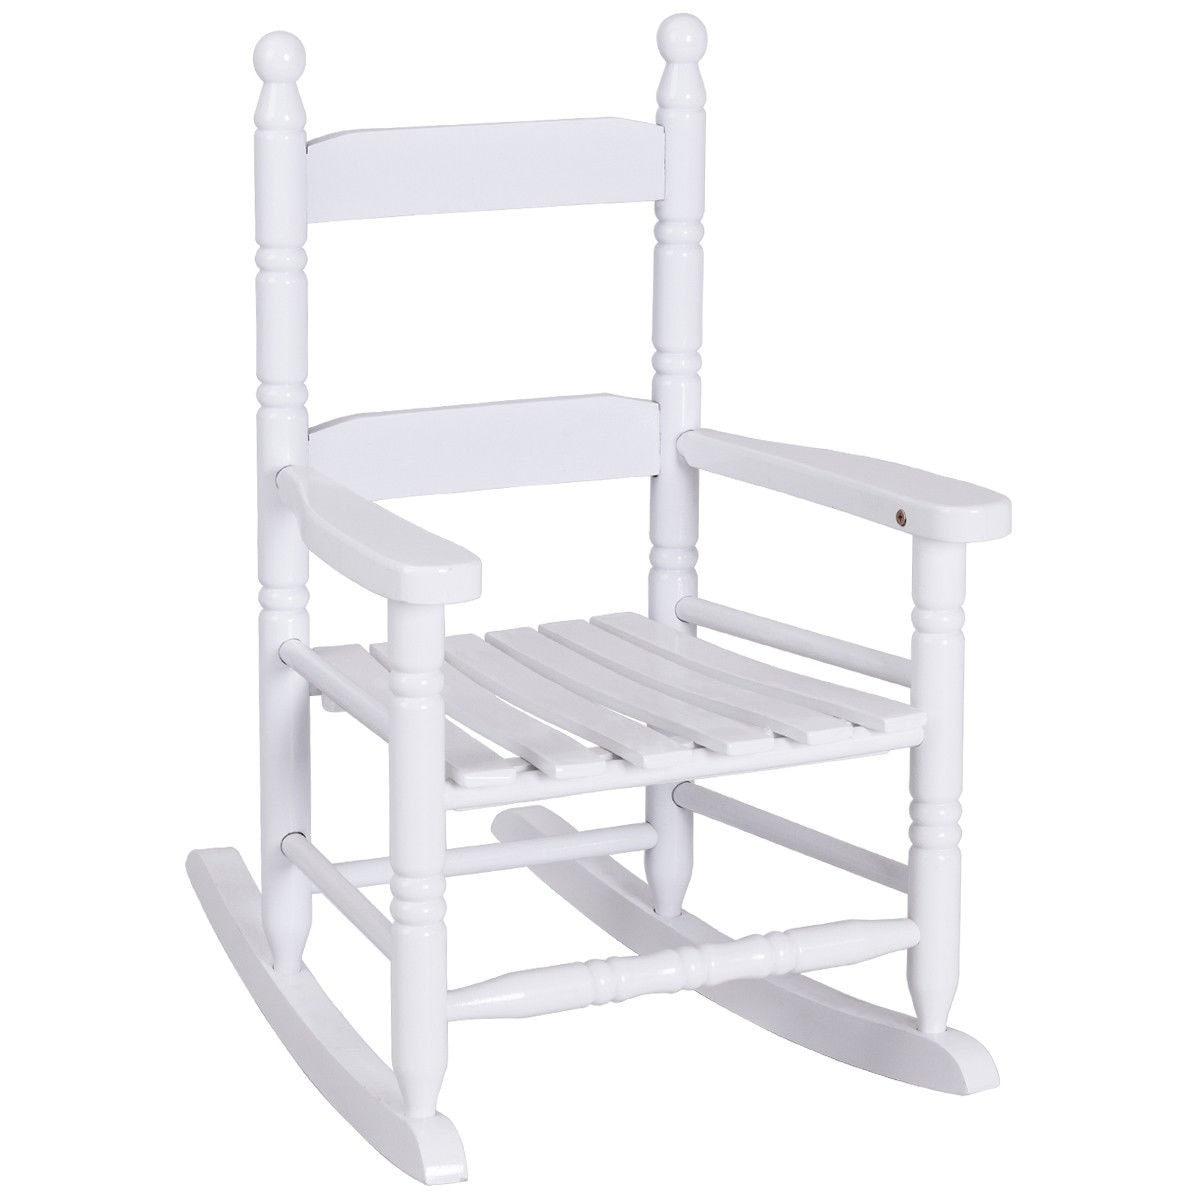 Stupendous Costway Classic White Wooden Children Kids Rocking Chair Slat Back Furniture Creativecarmelina Interior Chair Design Creativecarmelinacom